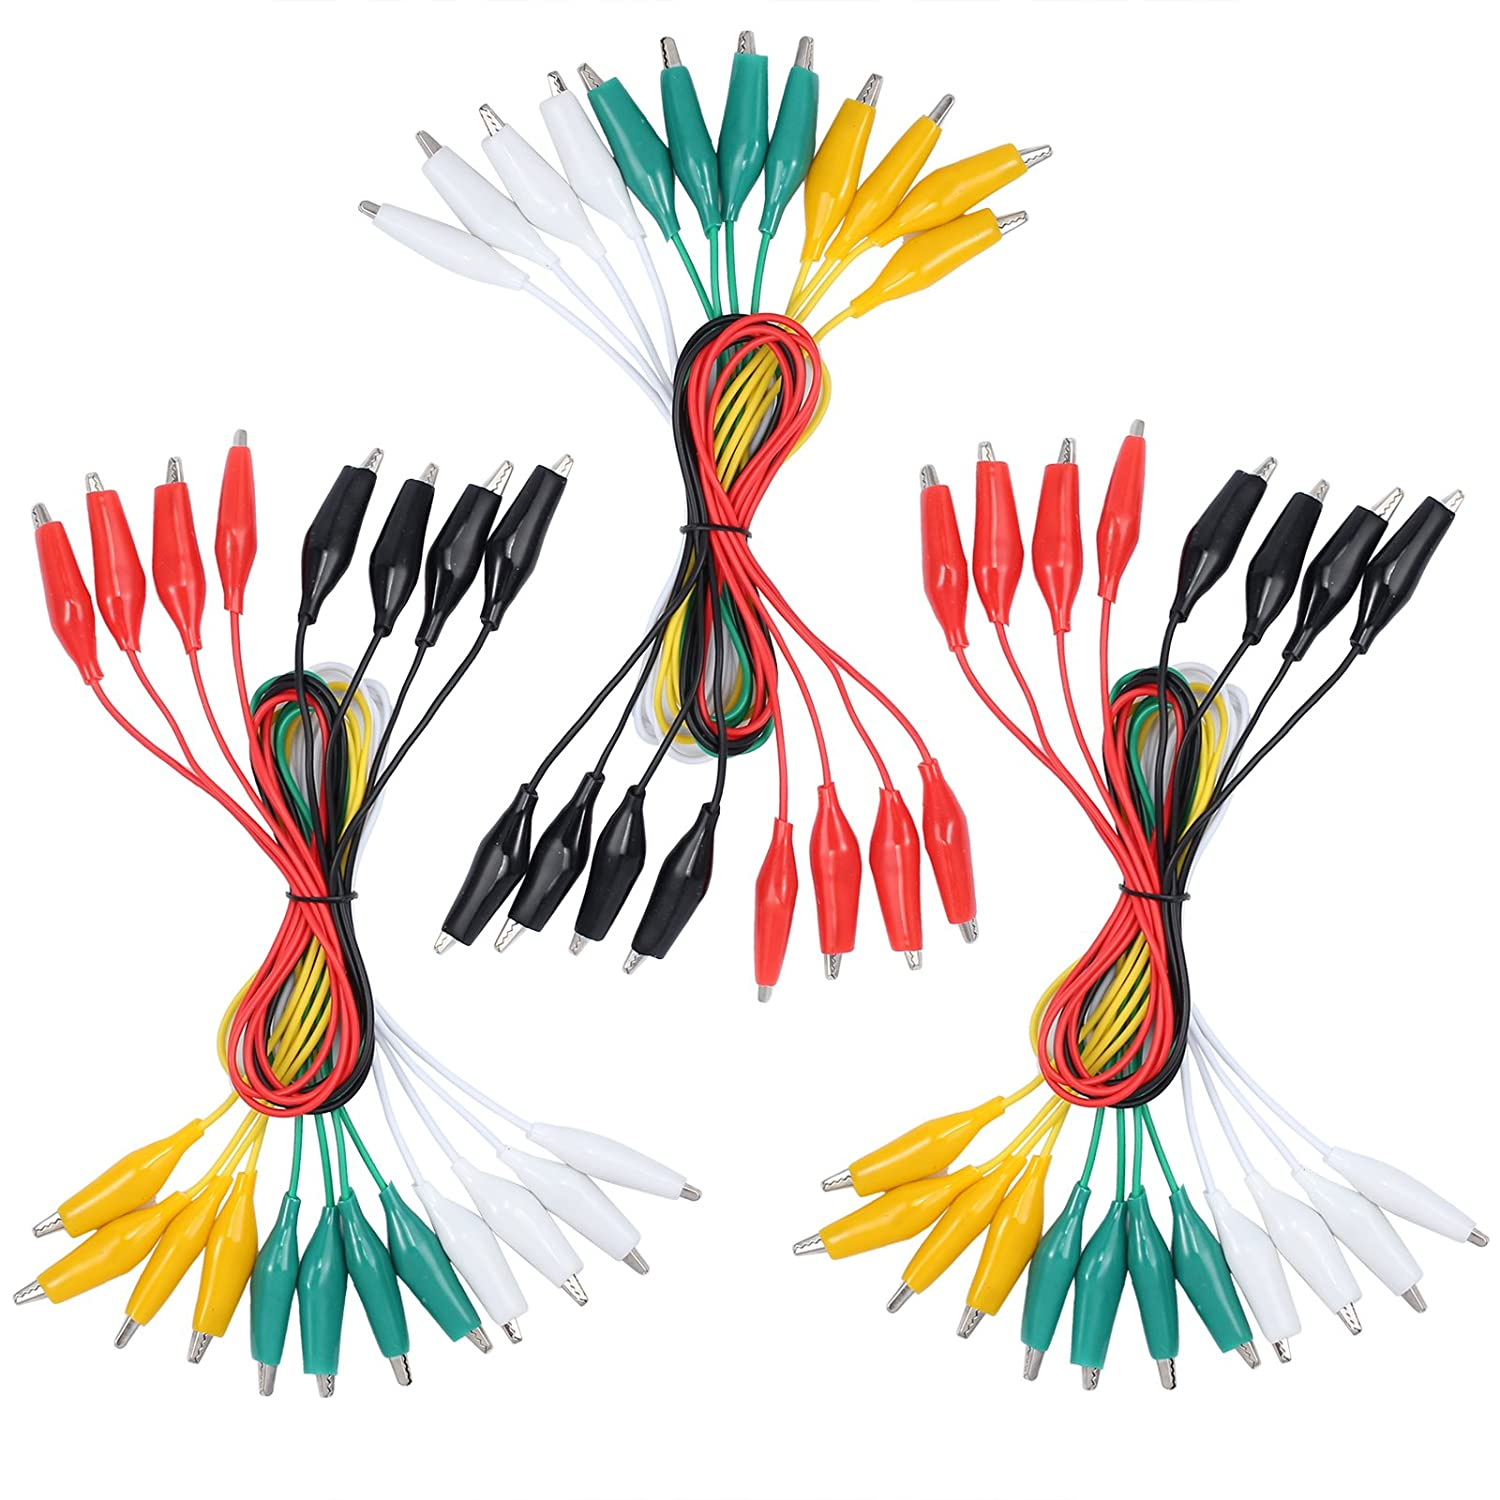 Neoteck 30 PCS Test Leads with Alligator Clips Set Double-Ended 19.7 Inch Jumper Wire Crocodile Clips for Most Electronics Works